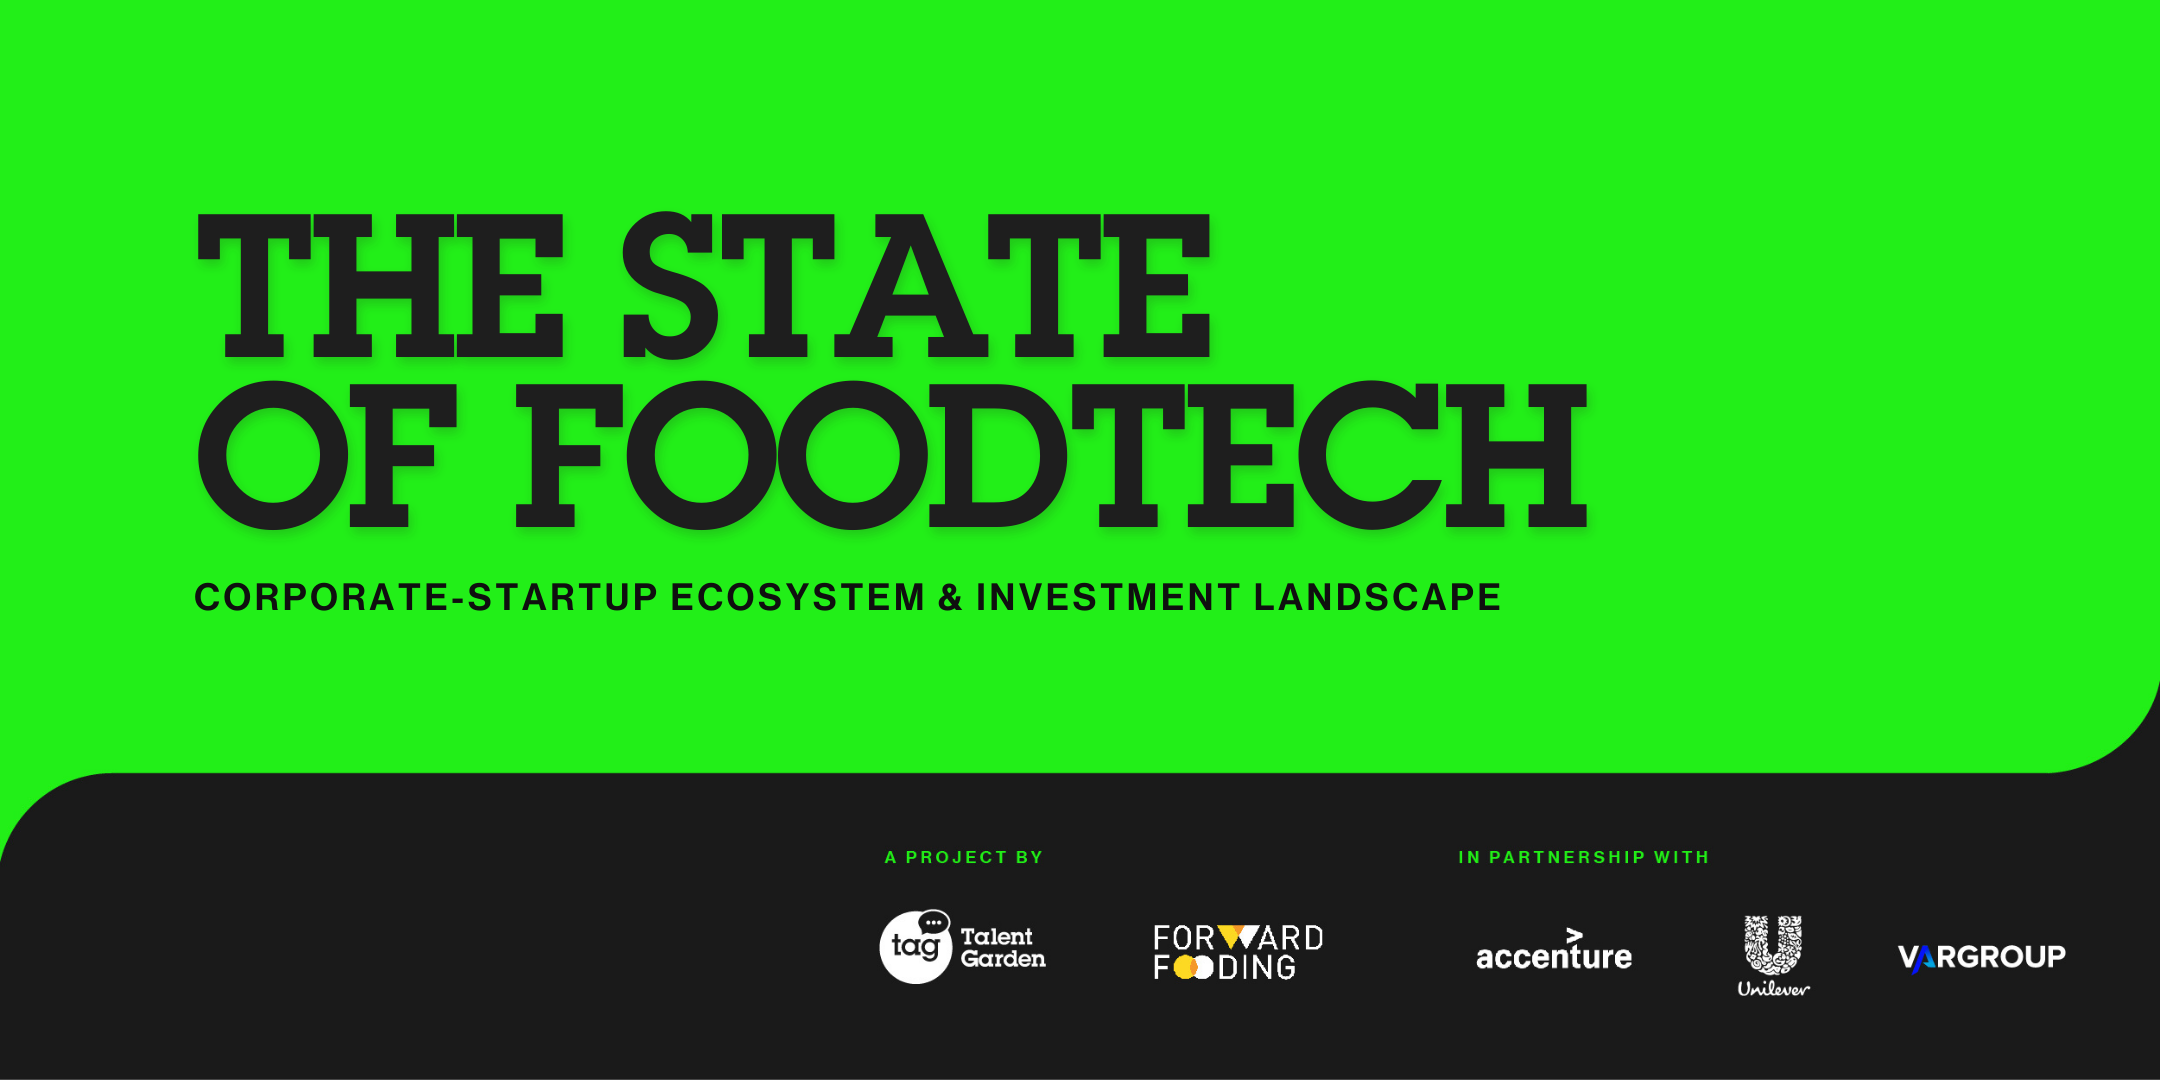 The State of Foodtech: Corporate-Startup Ecosystem & Investment Landscape